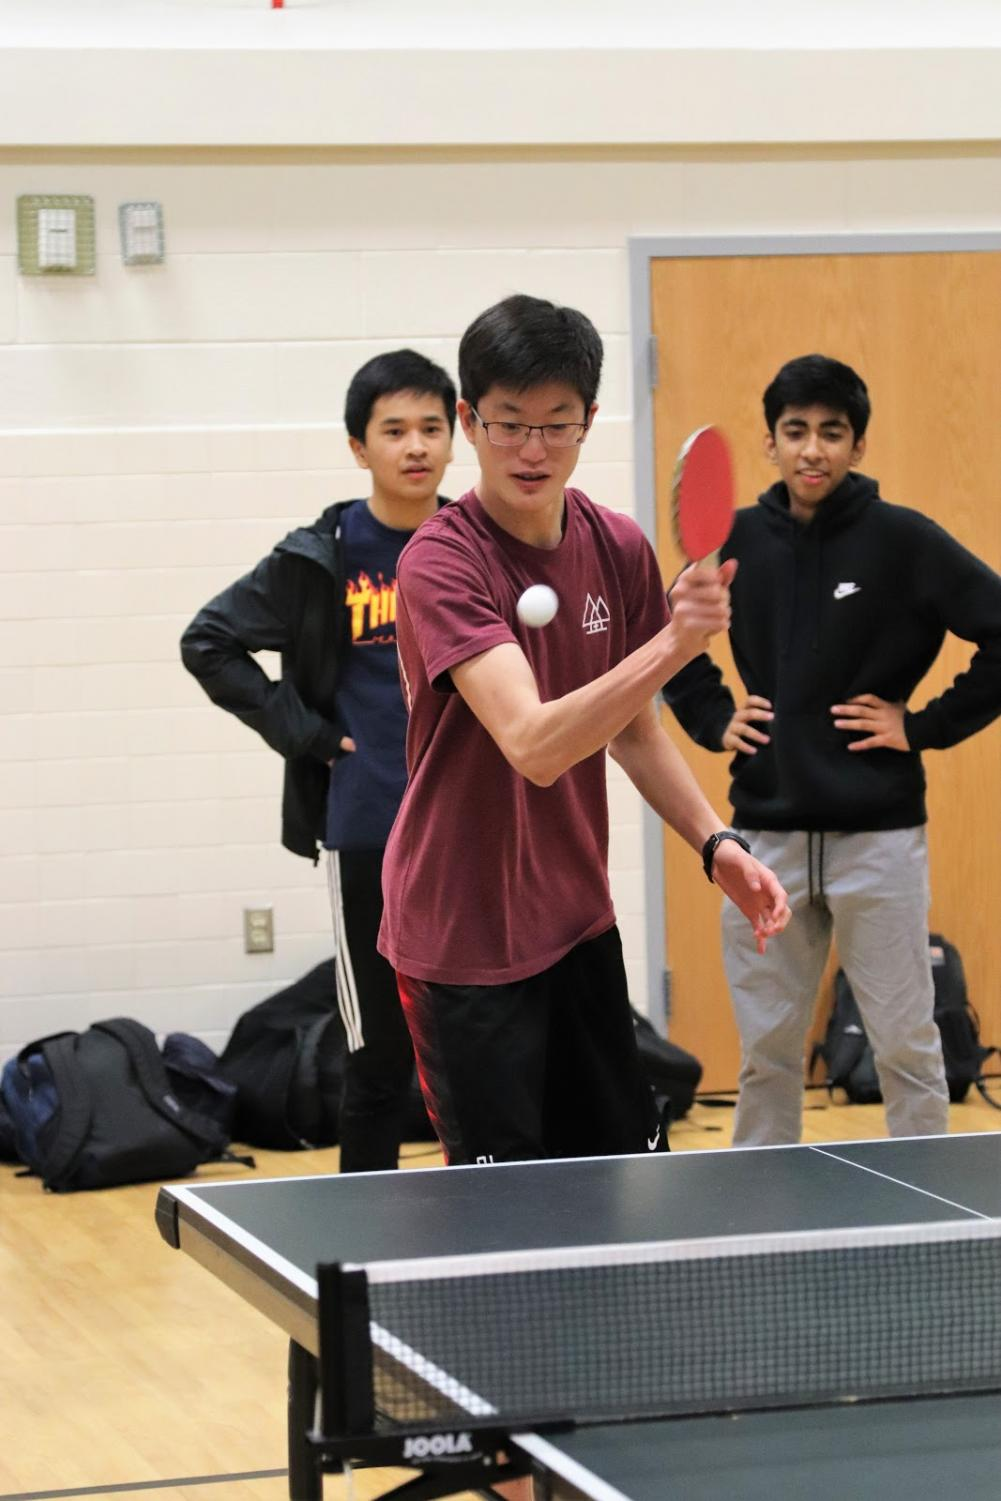 Ready for action, freshman Andrew Kim attempts to knock back the ball coming at him. Freshman Shreyas Chennamaraja and Alex Peal watch in the background as they wait for their match to begin. Photo courtesy of Forrest Meng.